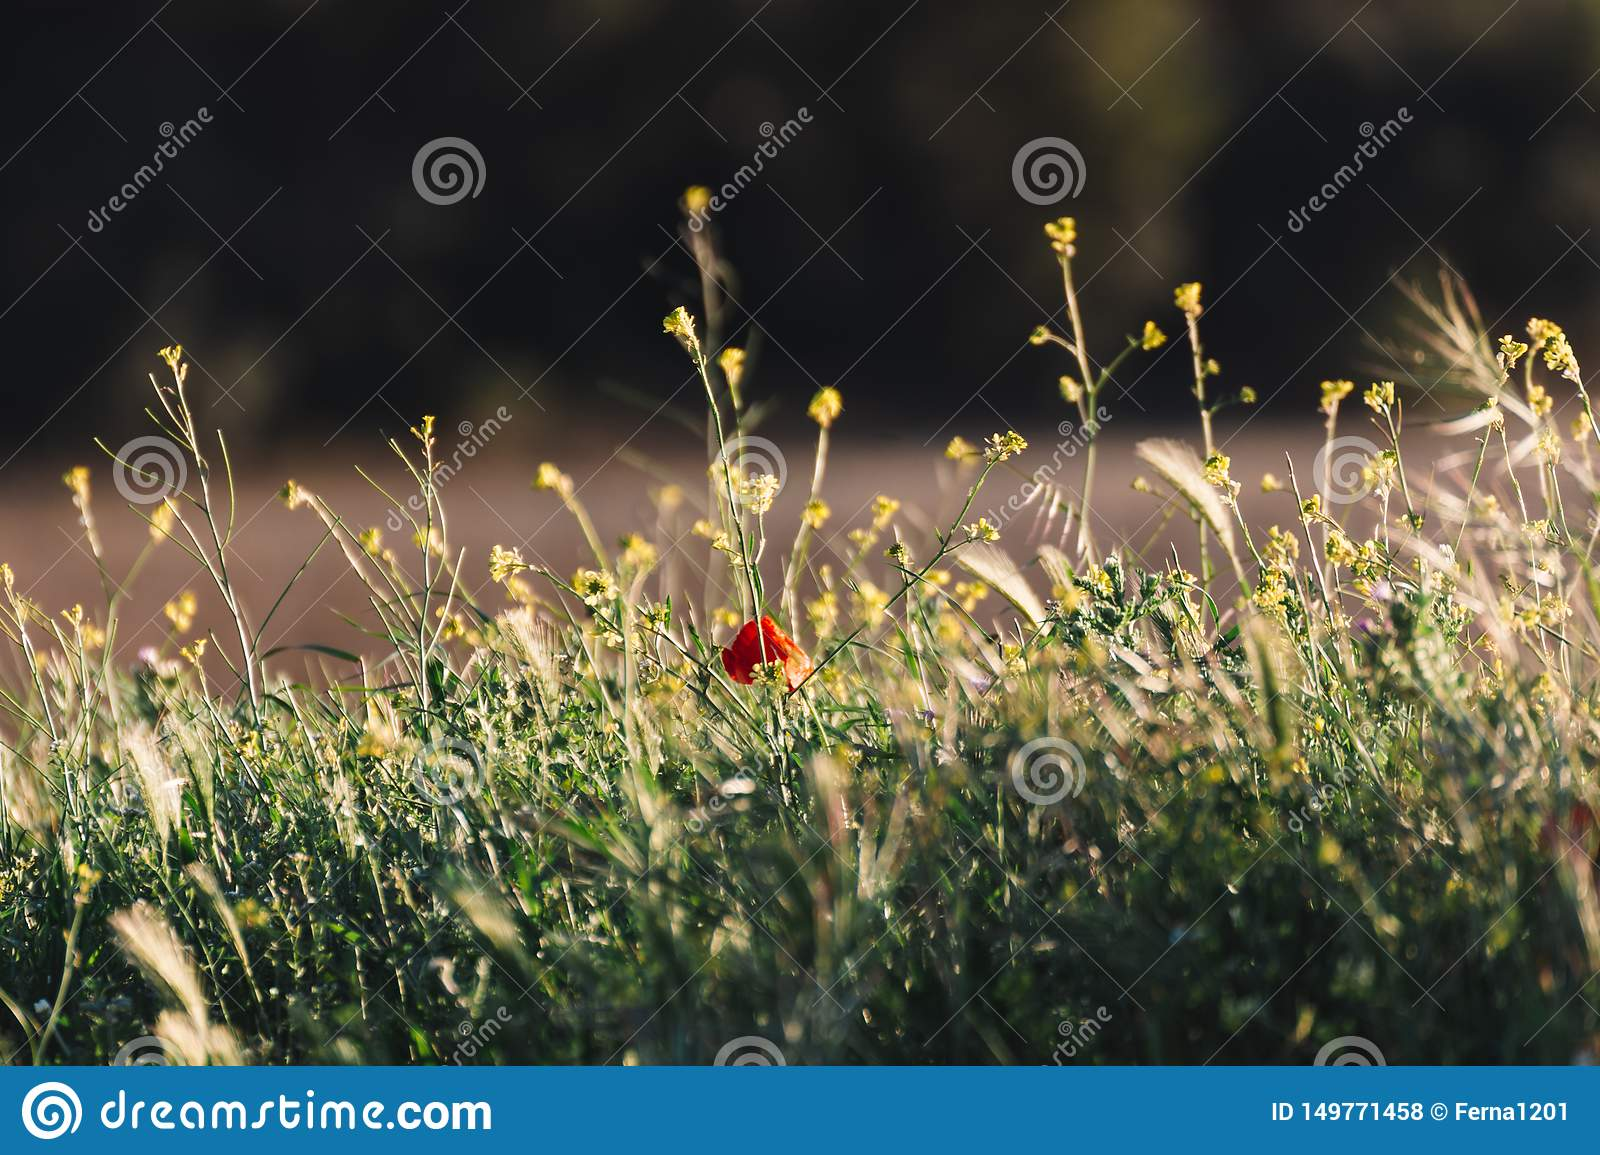 Lonely poppy that stands out in the wild flowers on a golden sunset in the background. Typical spring and summer background